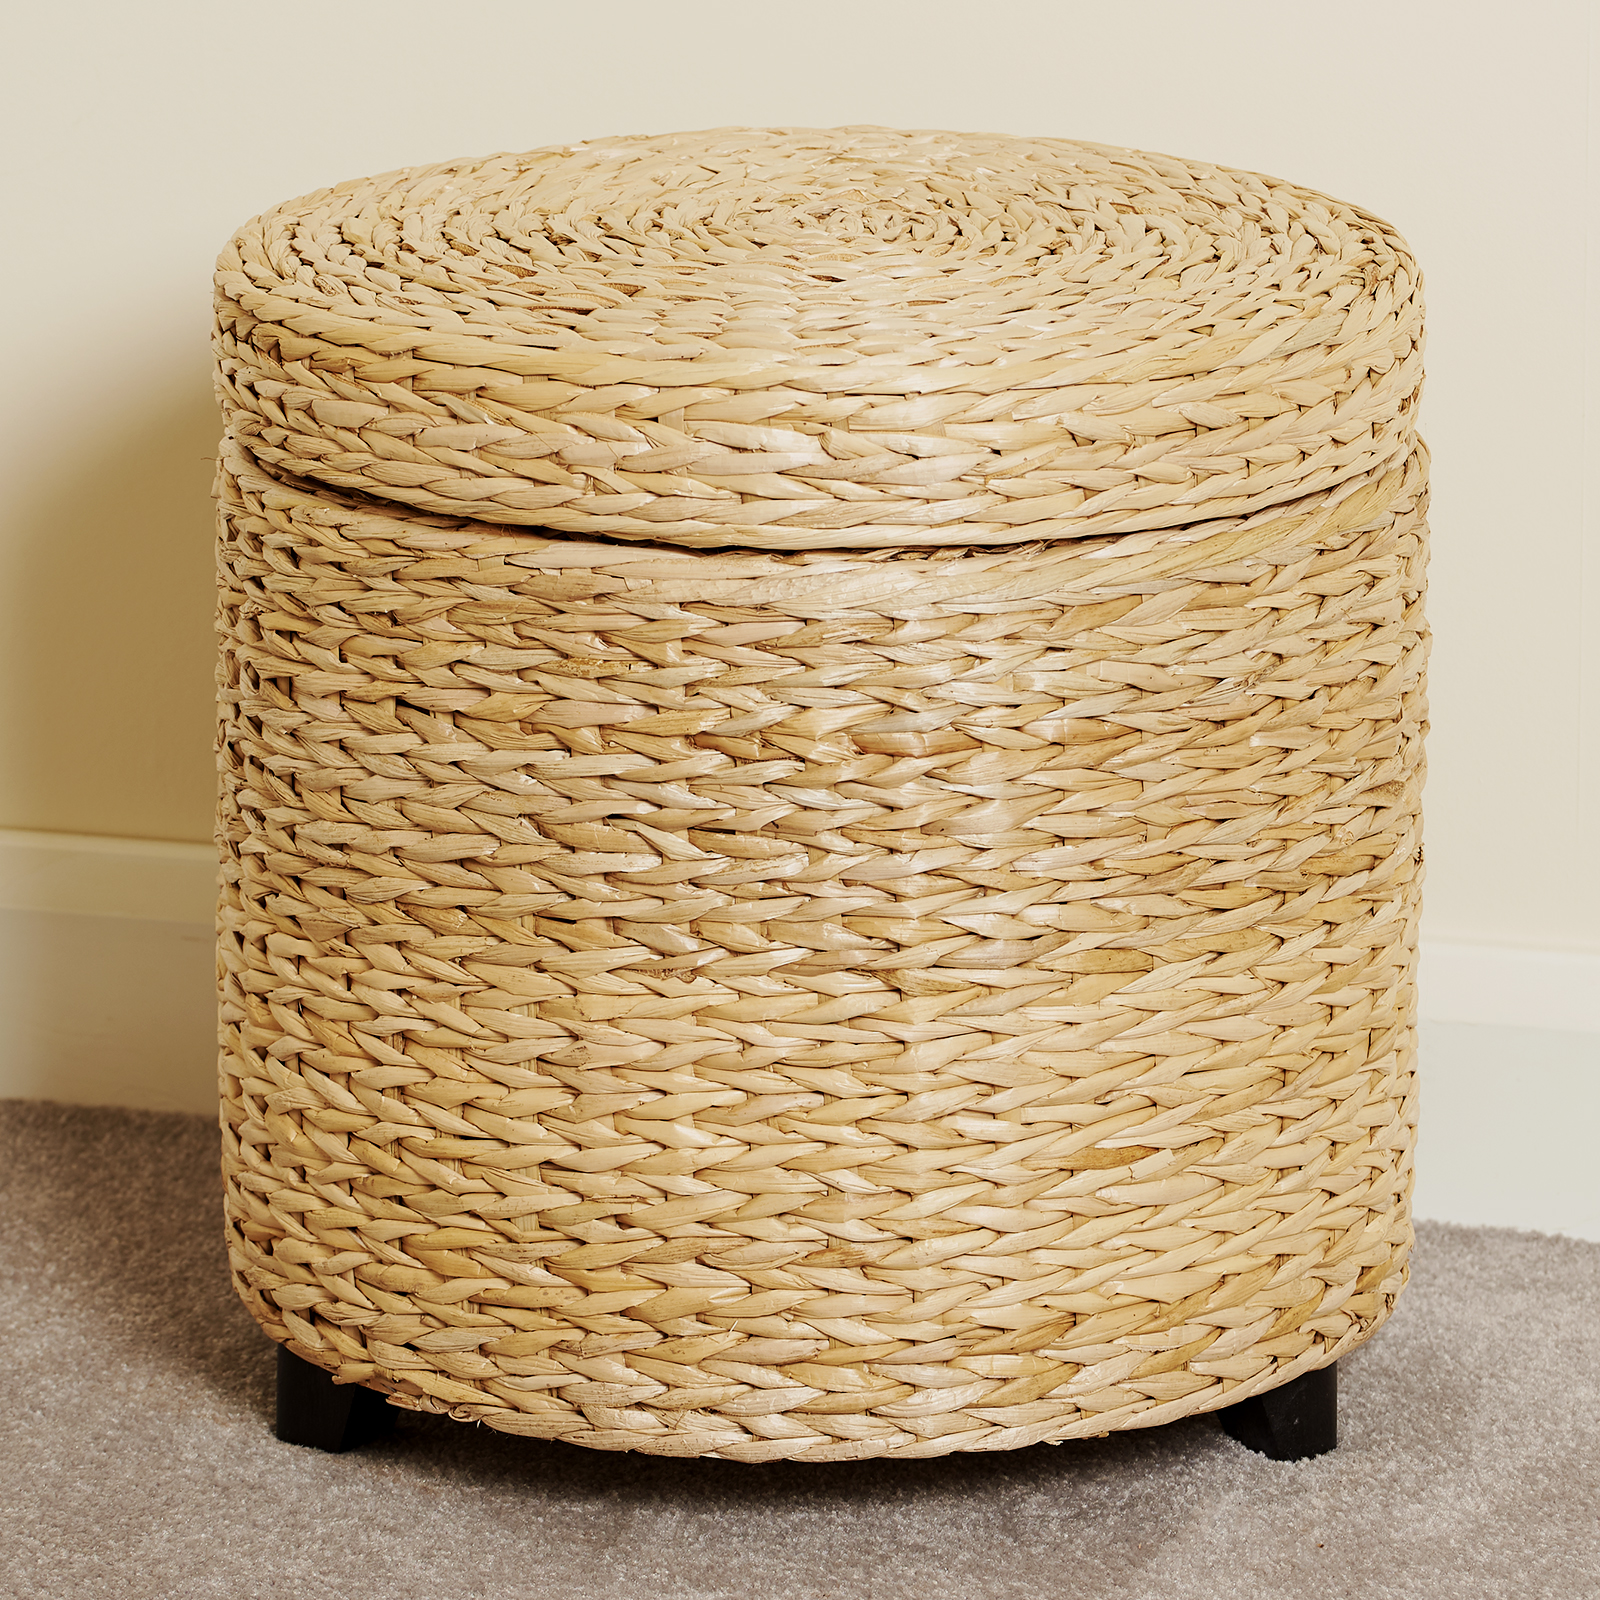 Details About Round Storage Ottoman Stool Side Table Seat Woven Wicker Rattan Style Furniture